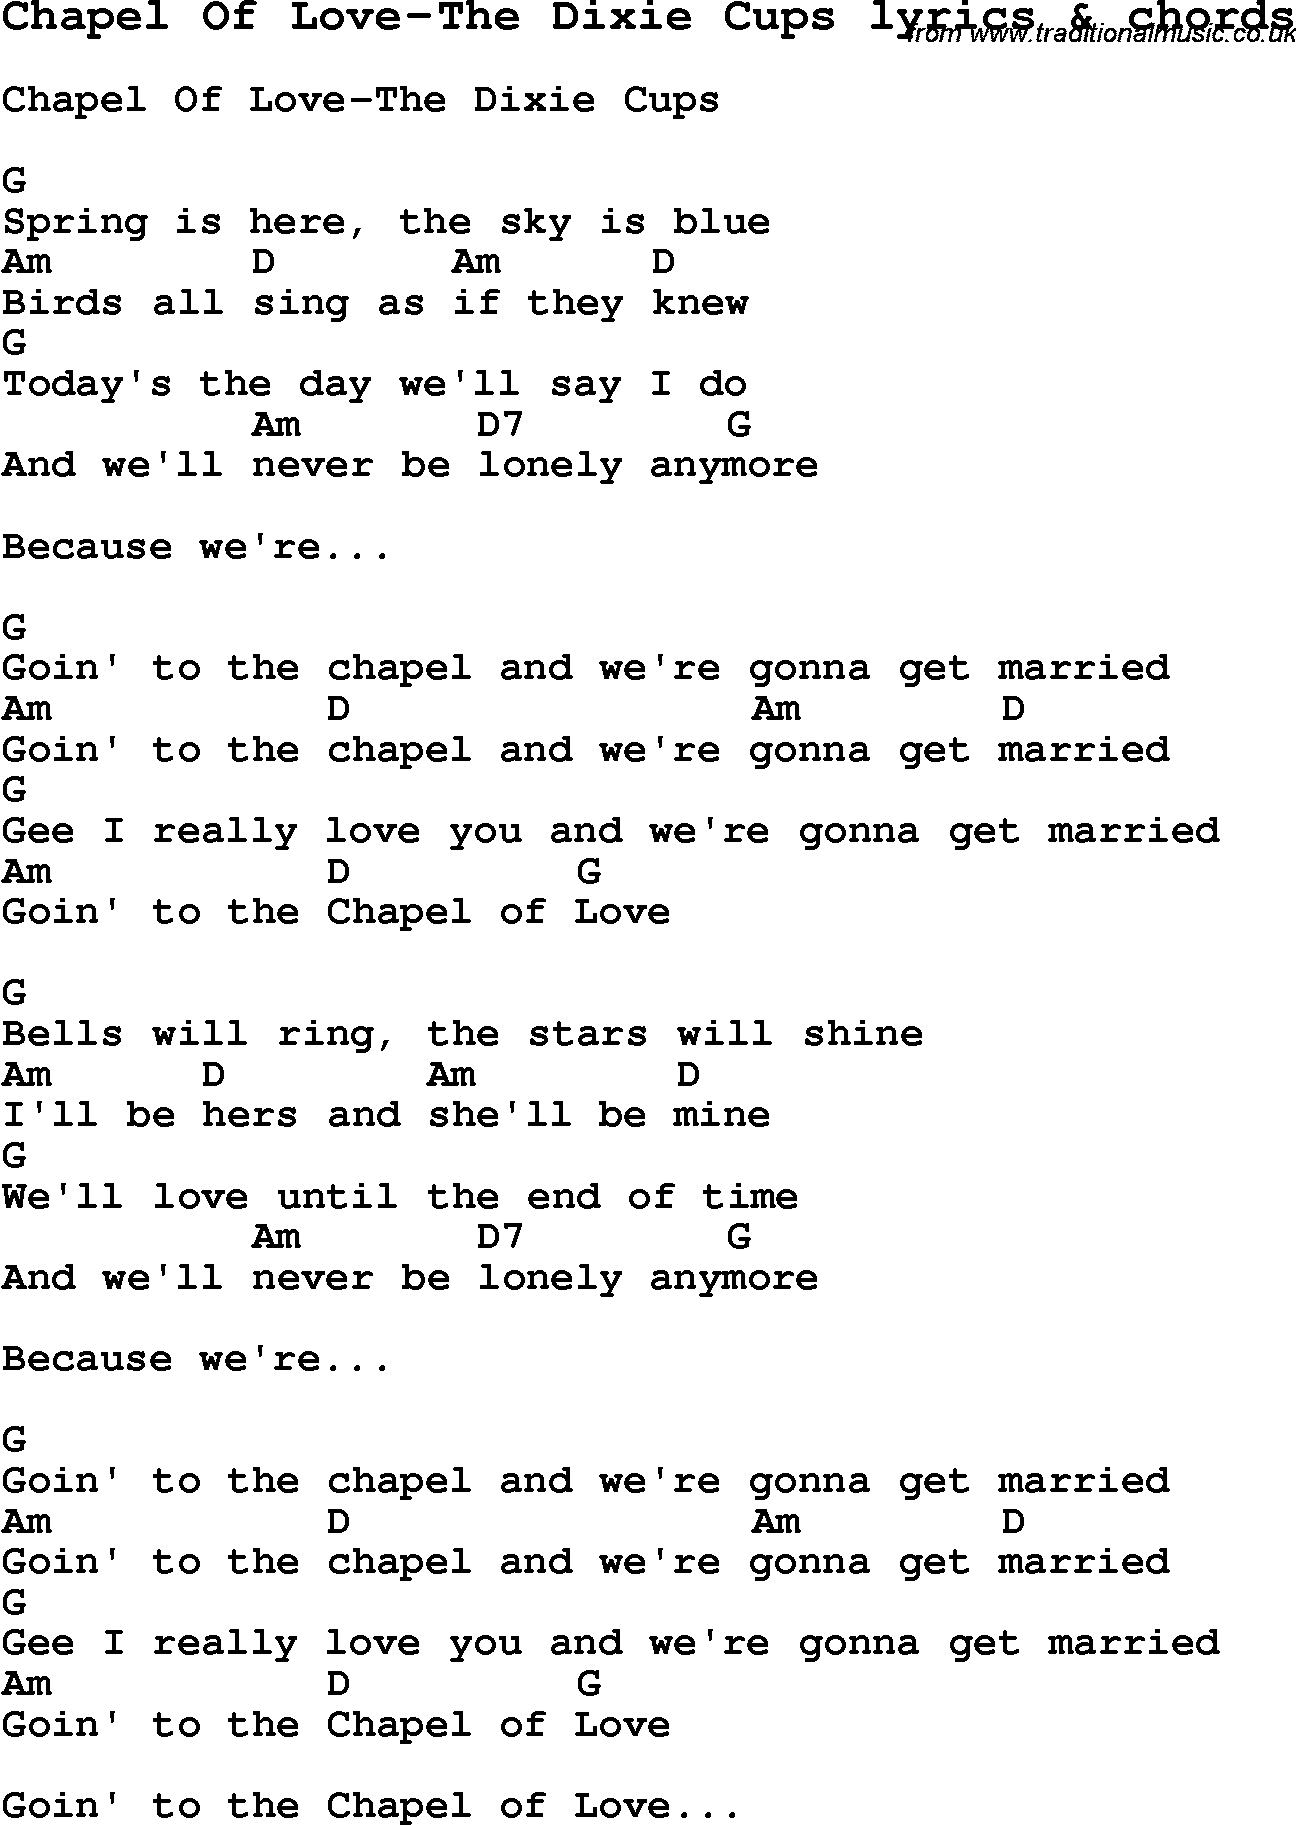 Love Song Lyrics forChapel Of Love The Dixie Cups with chords.